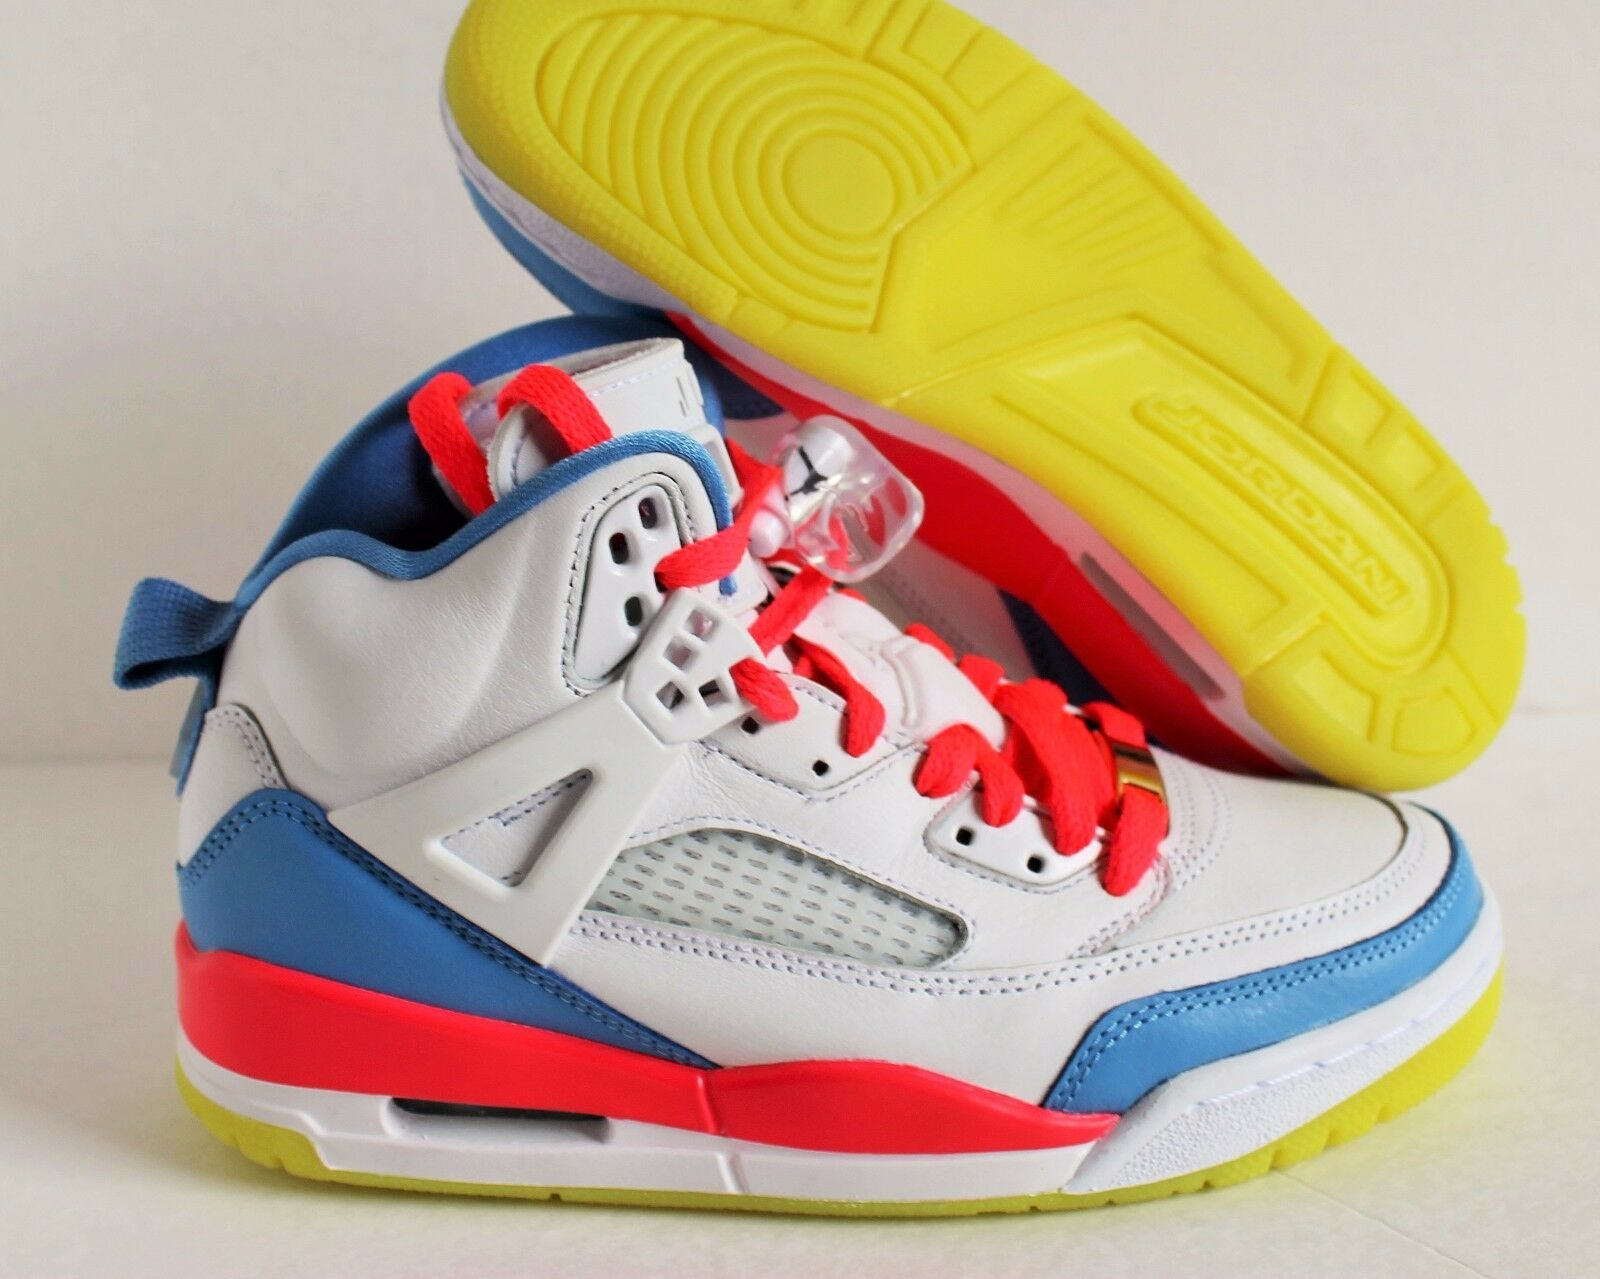 NIKE WMNS AIR JORDAN SPIZIKE iD WHITE-SOLAR RED -BLUE Price reduction Special limited time